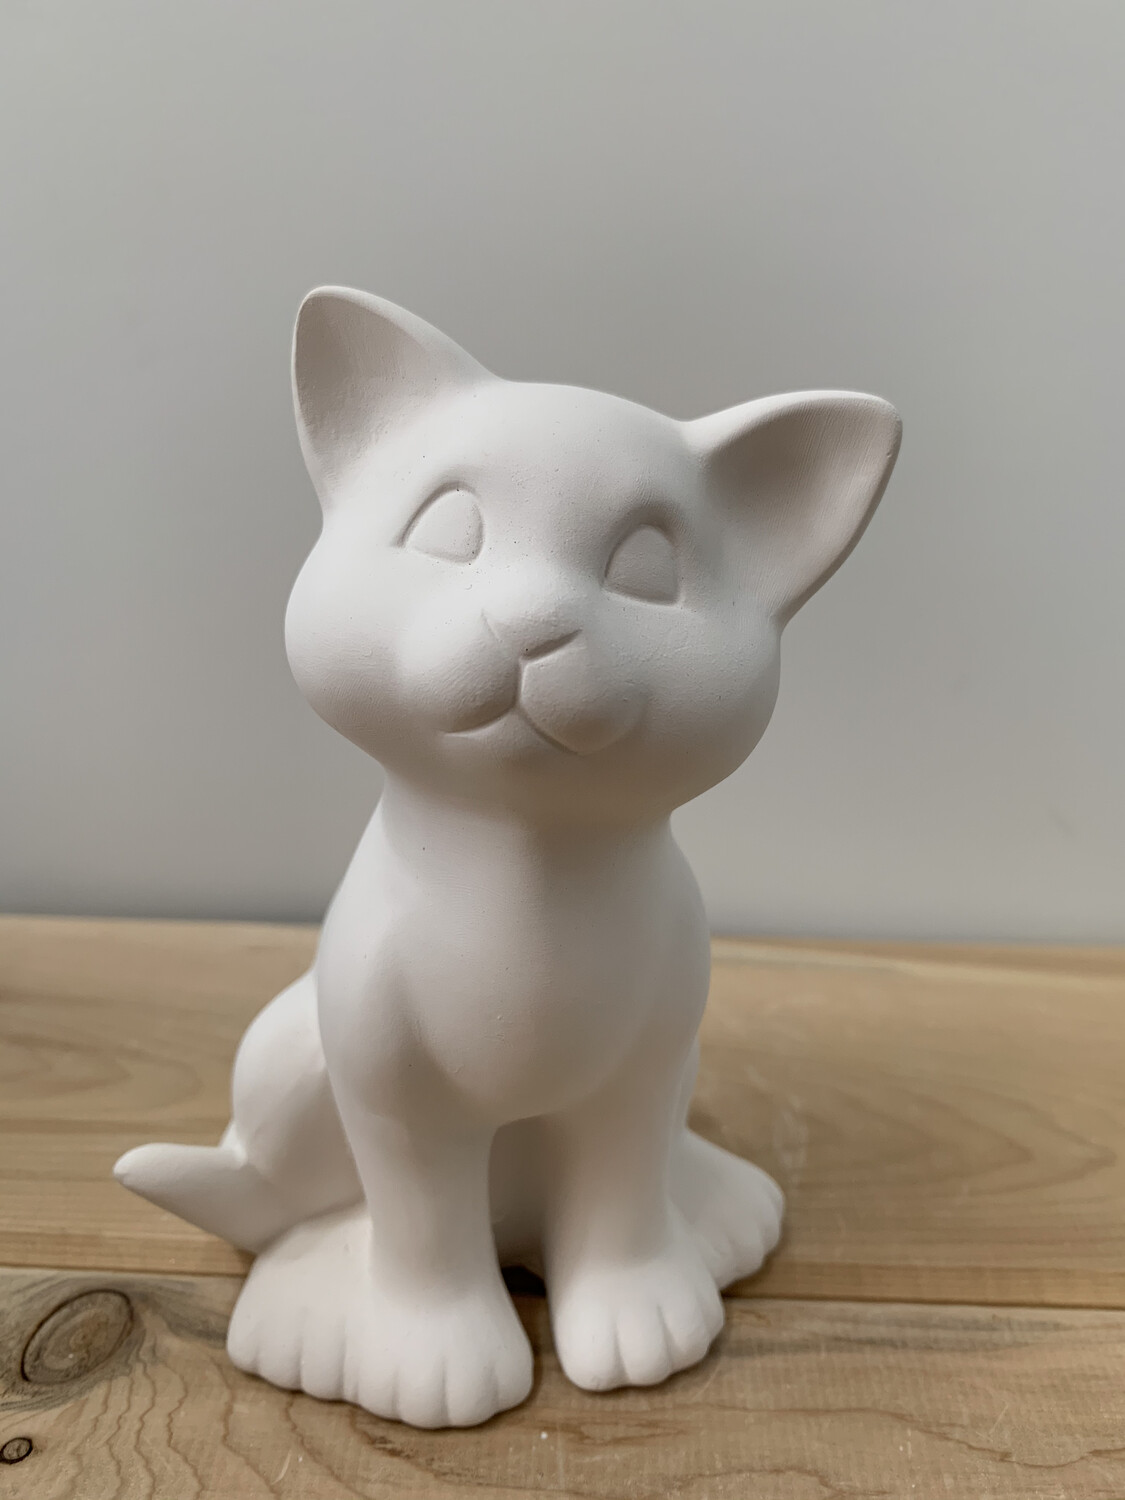 NO FIRE Paint Your Own Pottery Kit -  Ceramic Kitty Cat Figurine Acrylic Painting Kit